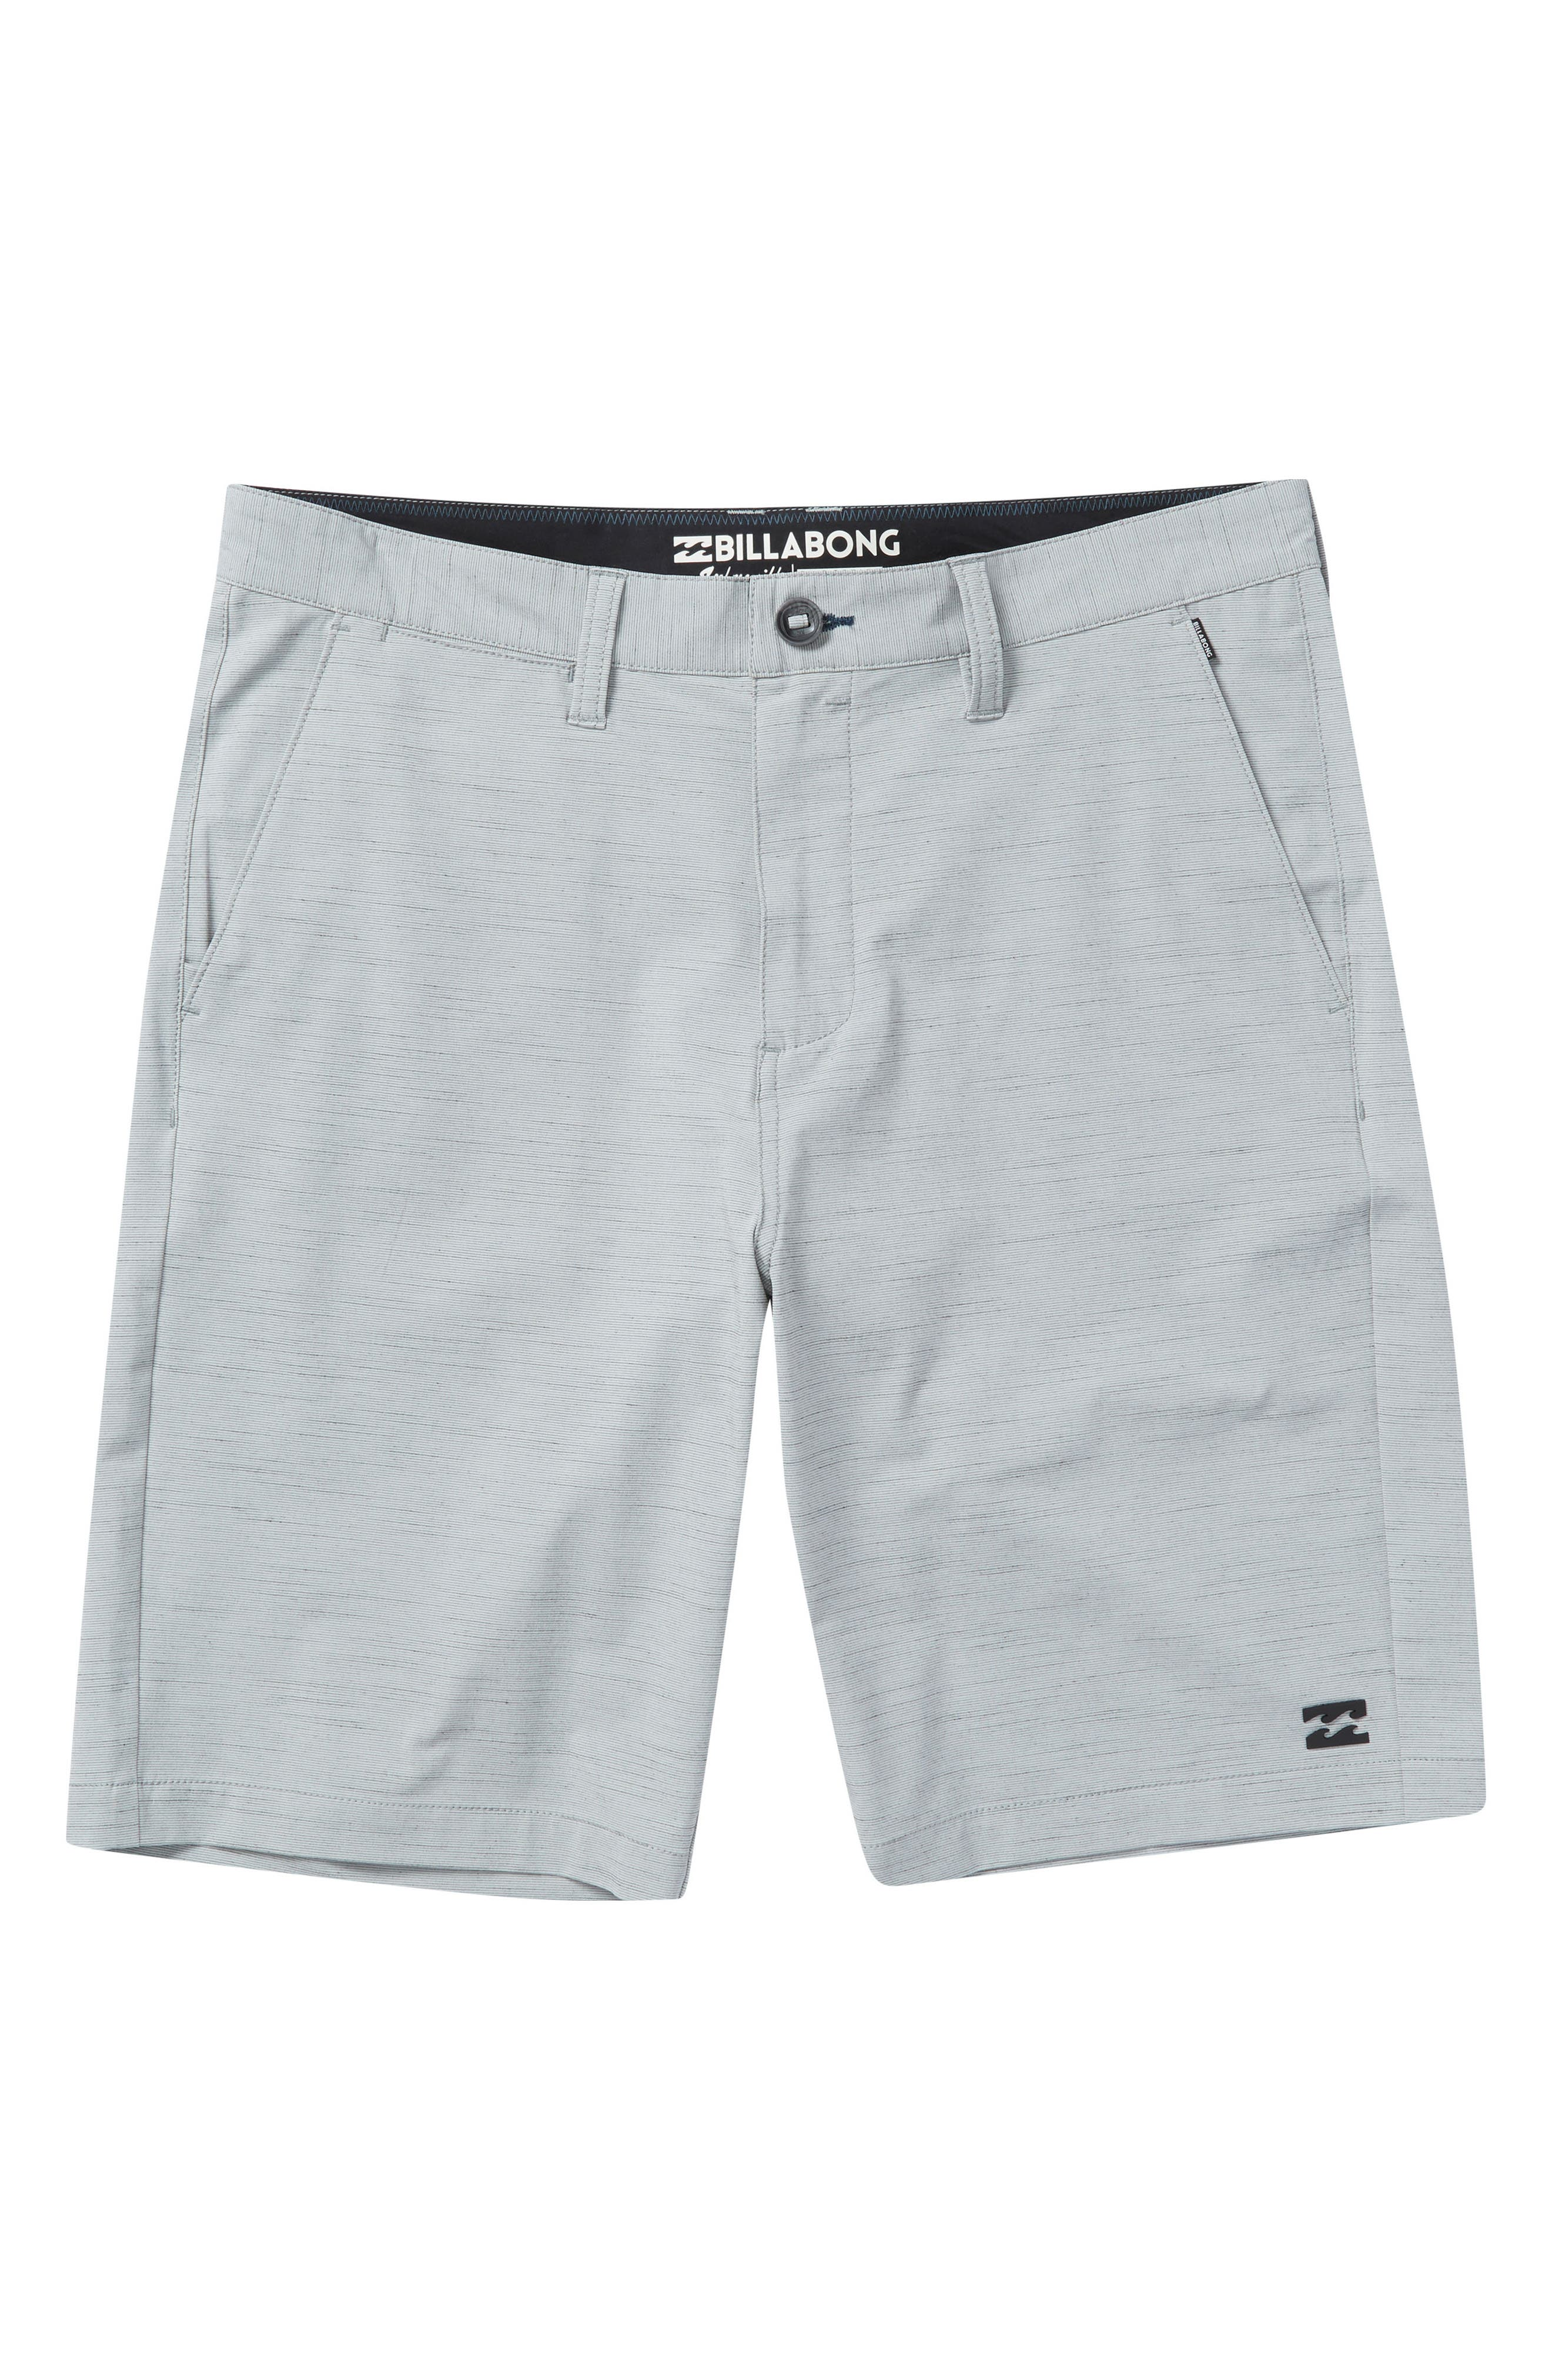 Crossfire X Hybrid Shorts,                             Main thumbnail 1, color,                             Silver